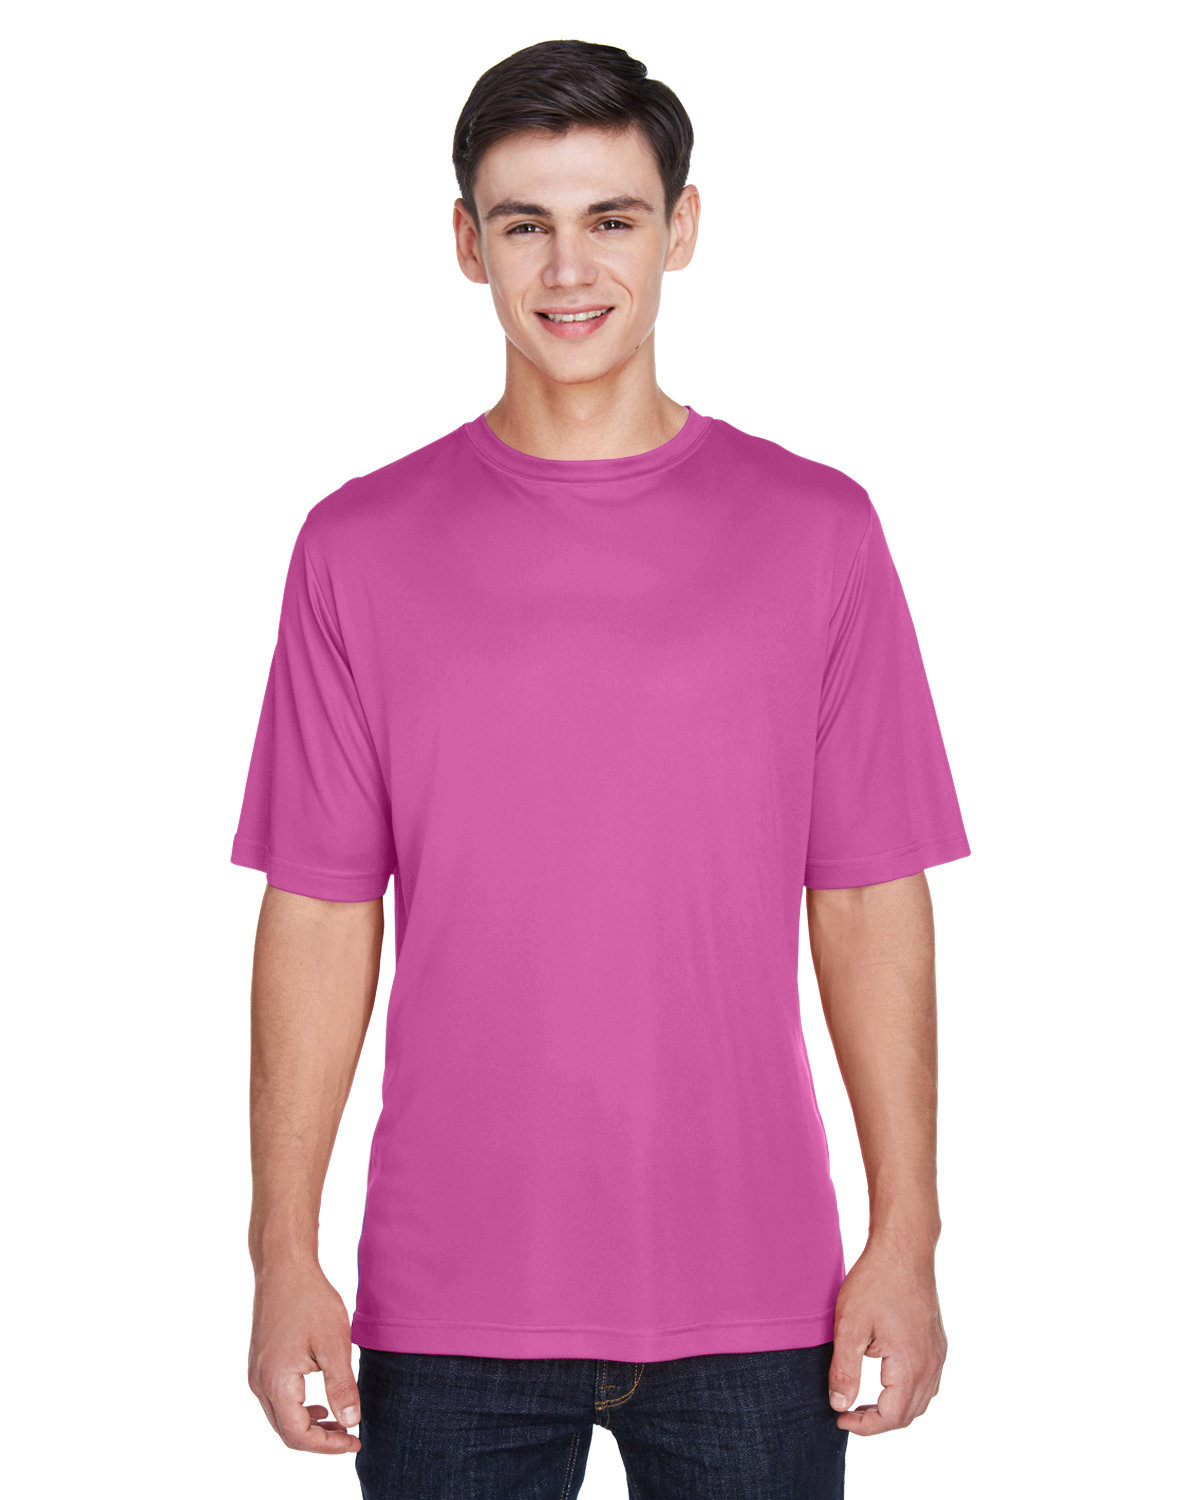 Team 365 Men's Zone Performance T-Shirt SP CHARITY PINK